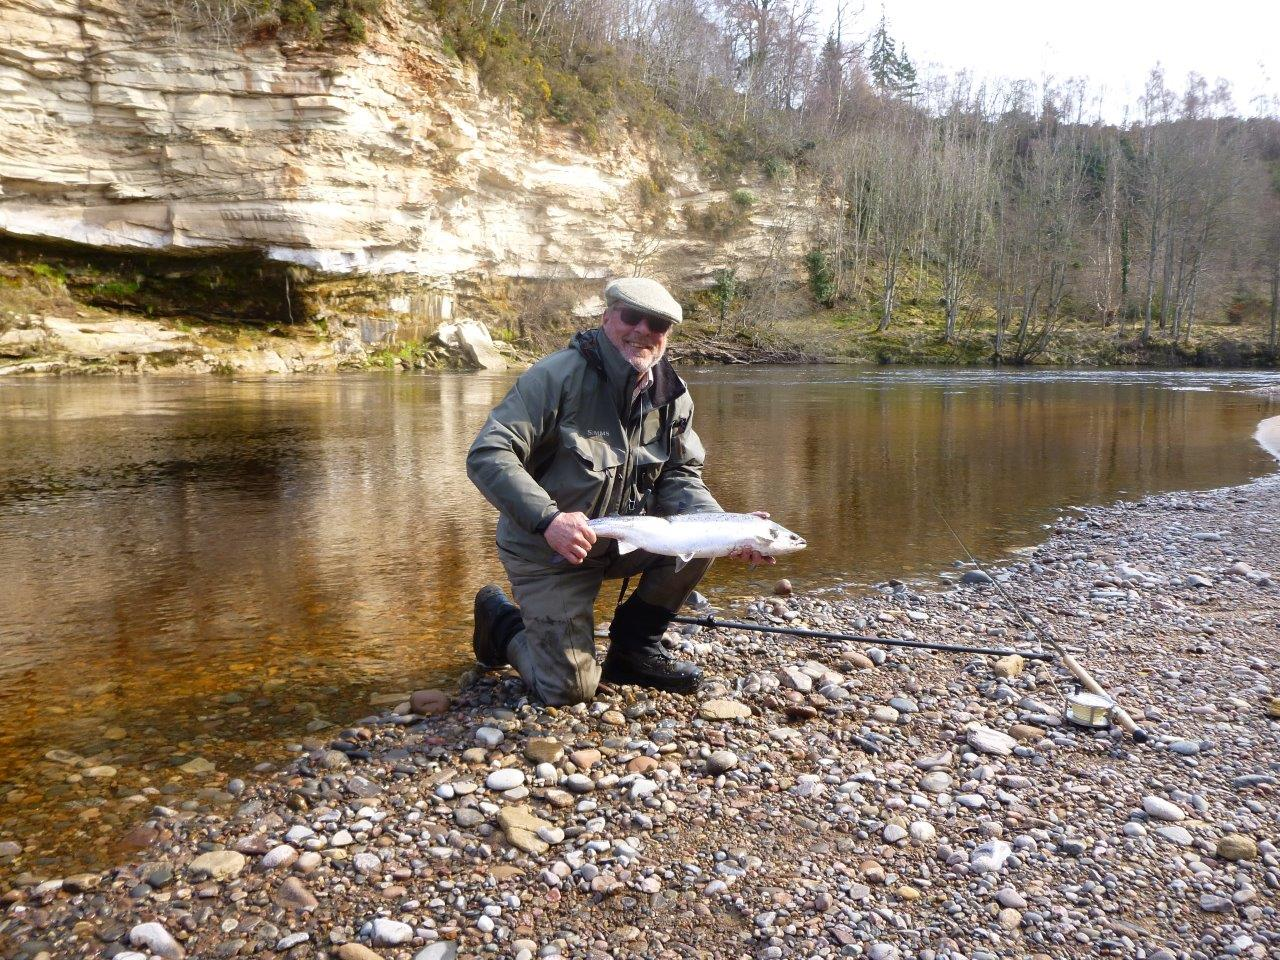 David Tisdale, 7 lbs., Scur Pool, Meads Beat, Darnaway, River Findhorn